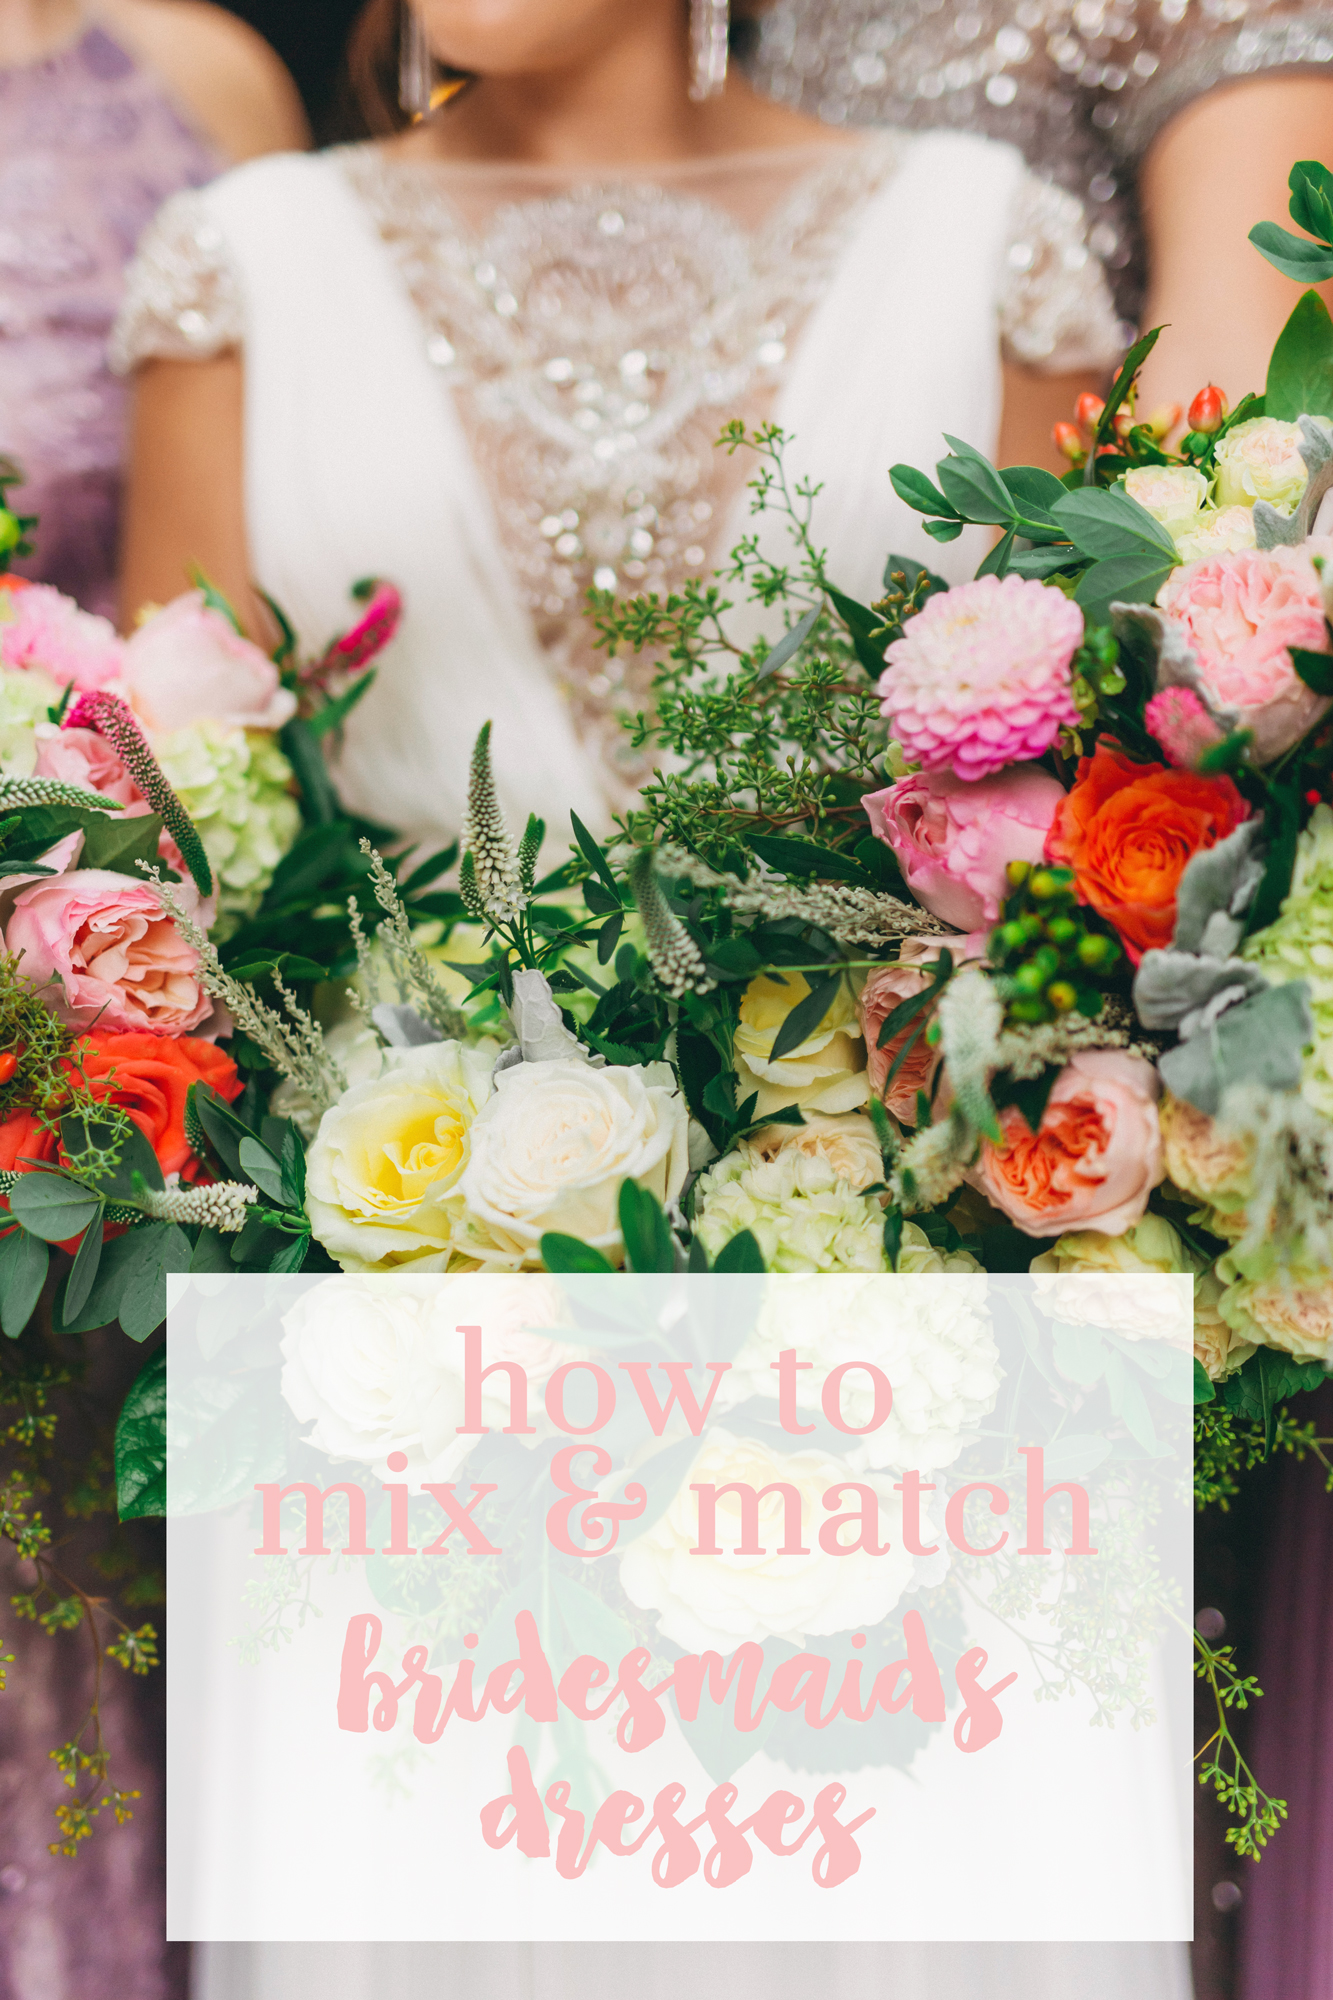 How to mix & match bridesmaids dresses / Mix & Match Bridesmaids Dresses